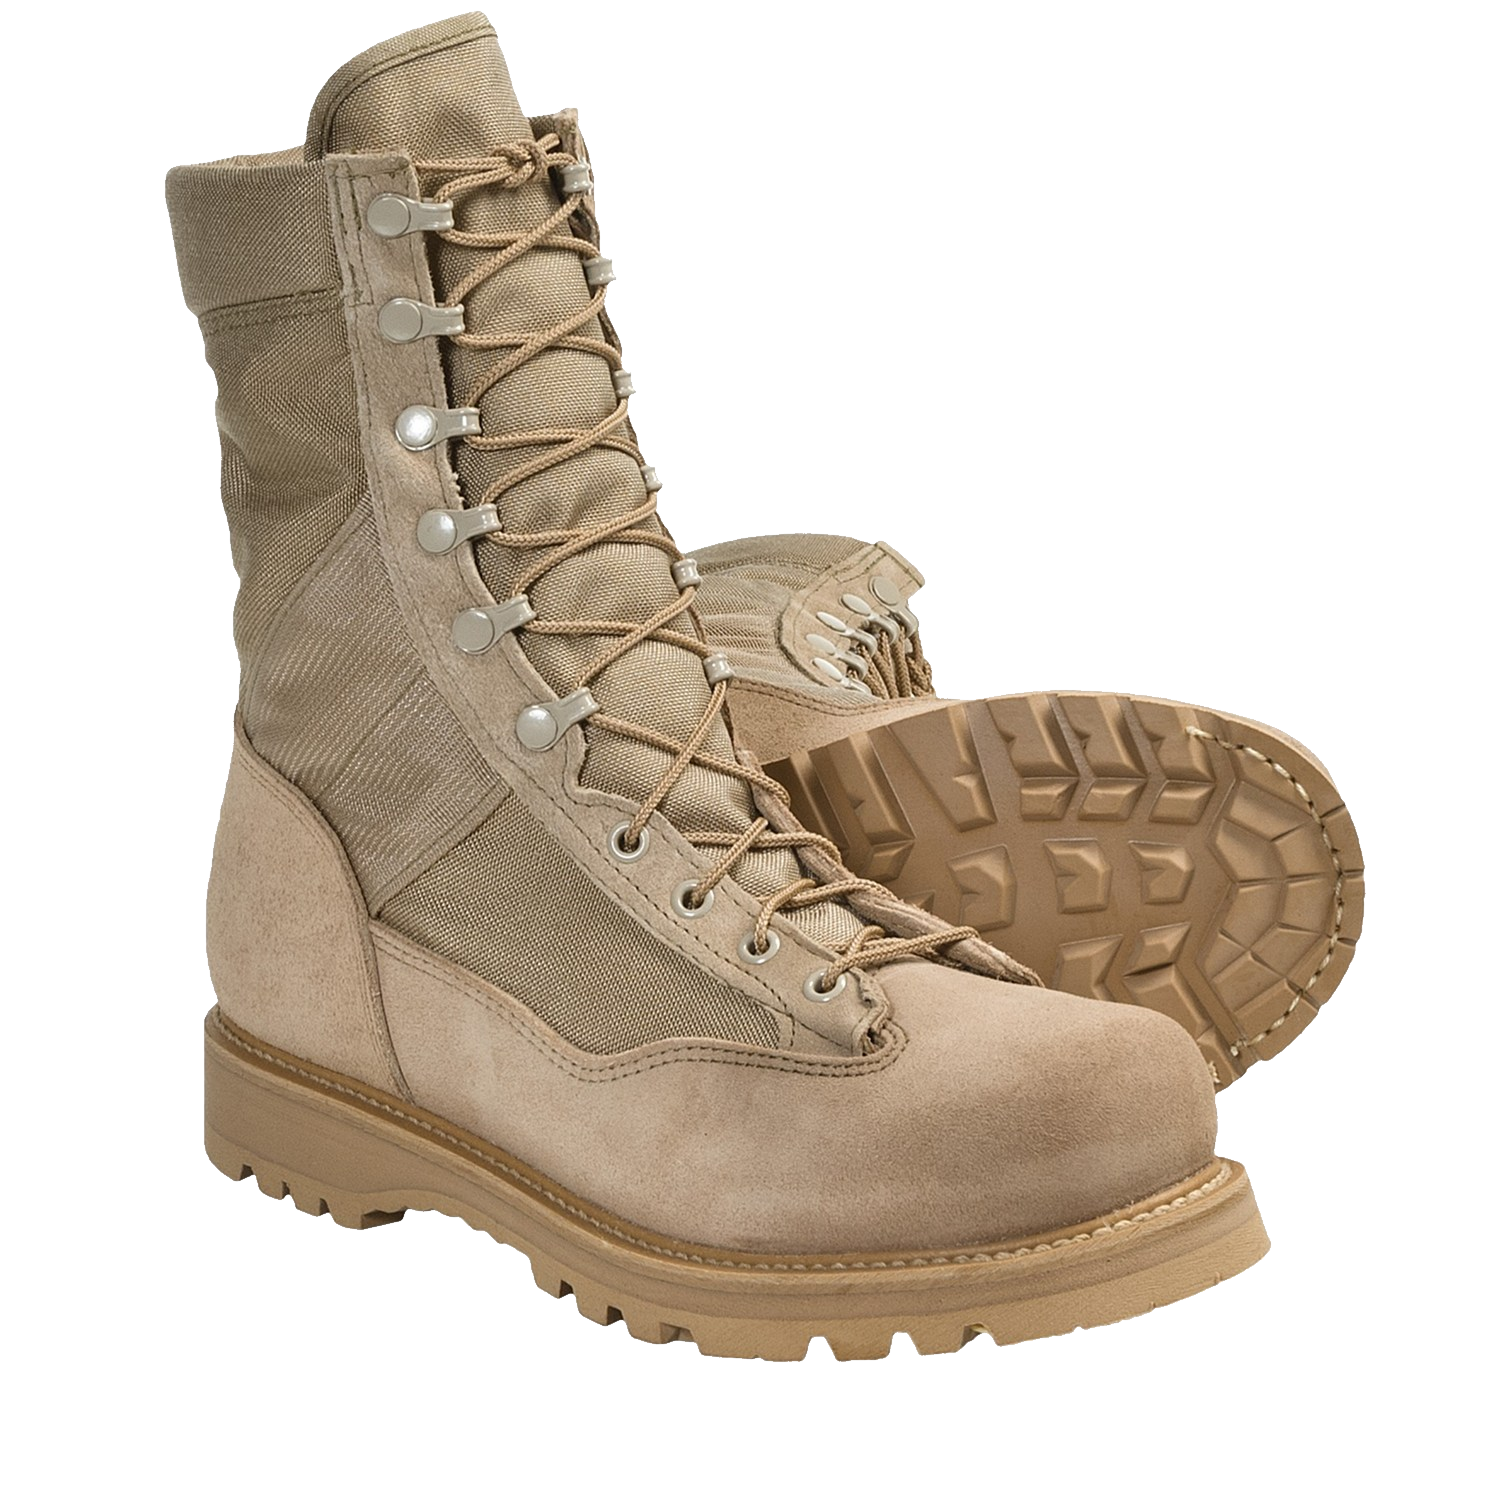 Color hiking book clipart png royalty free library Bangladesh Army Military Boots PNG Image - PurePNG   Free ... png royalty free library